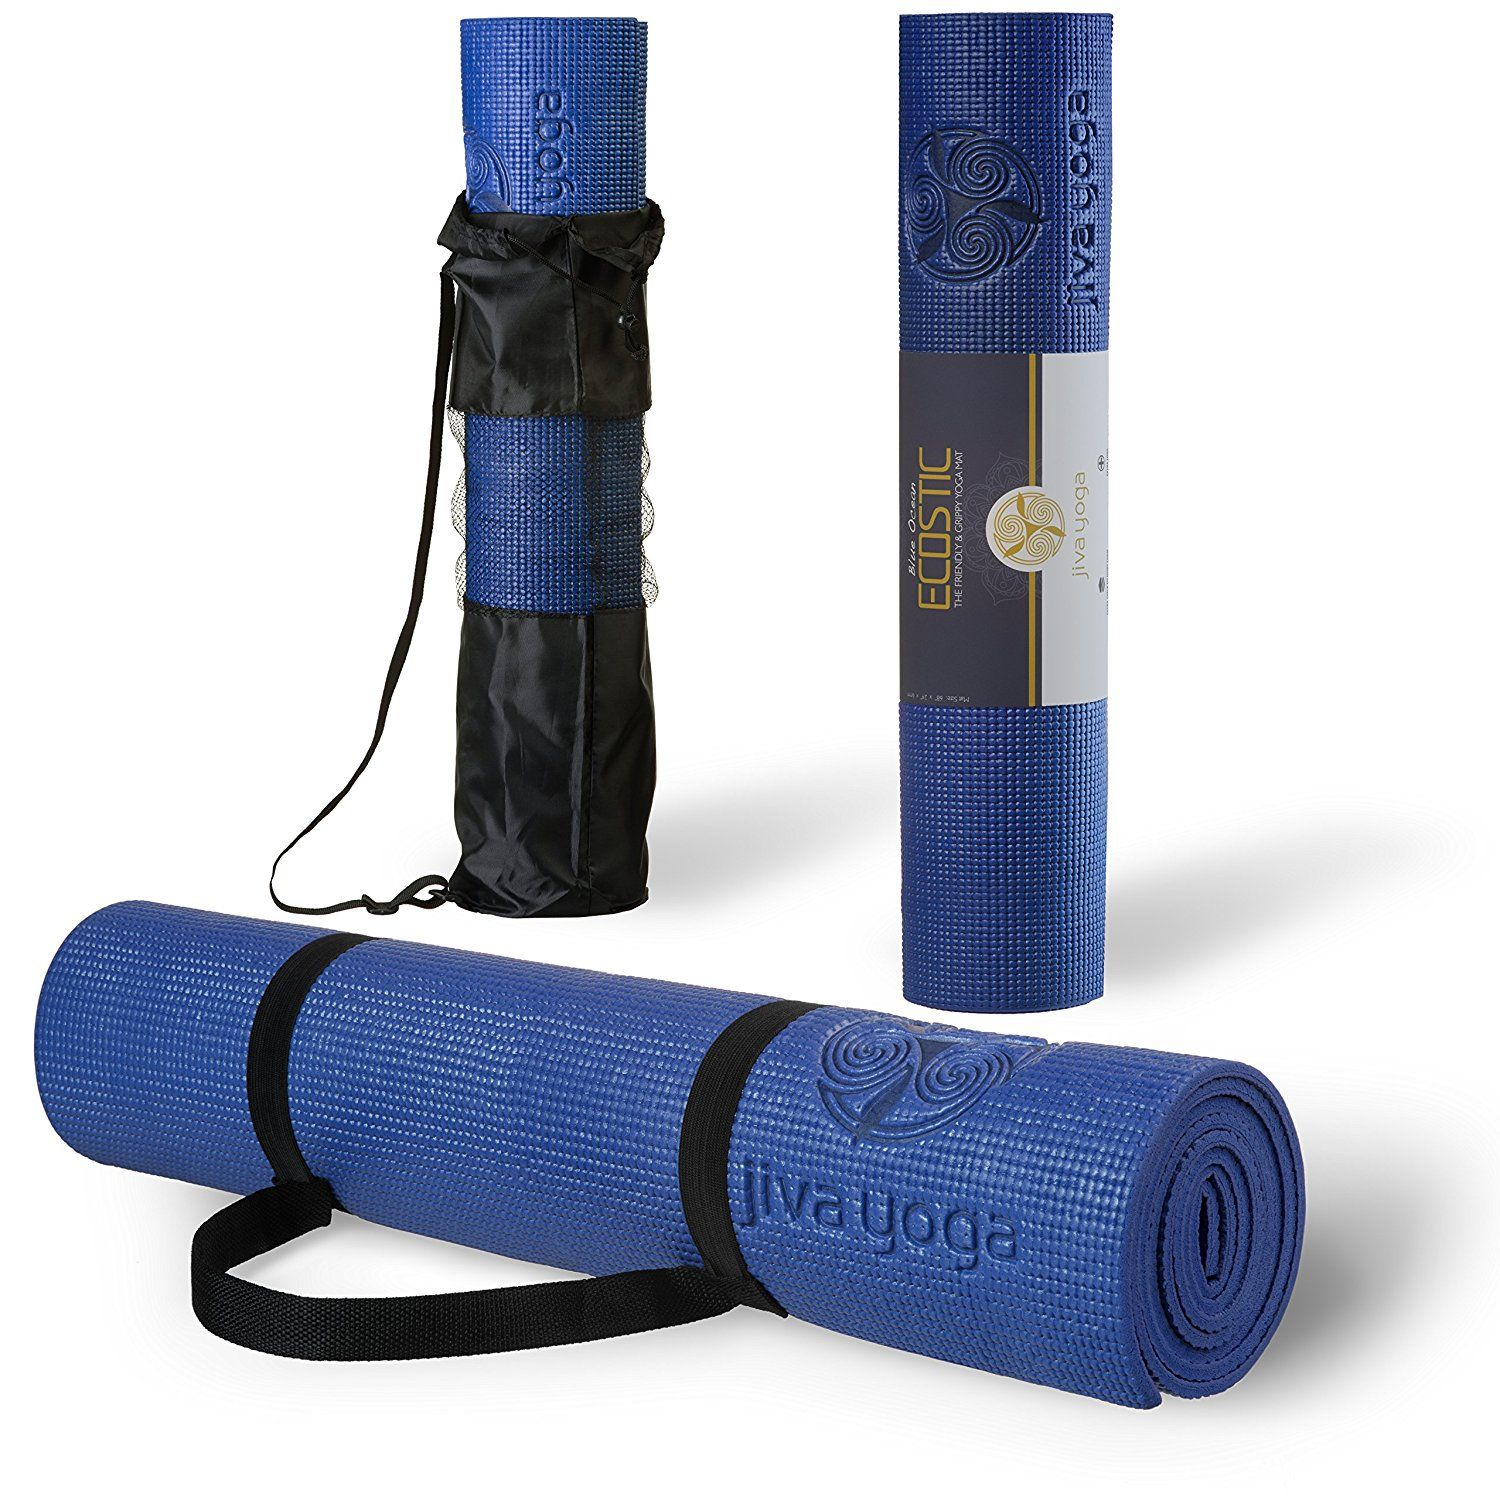 Jiva NonSlip Yoga Mats With Free Carrying Strap and Bag